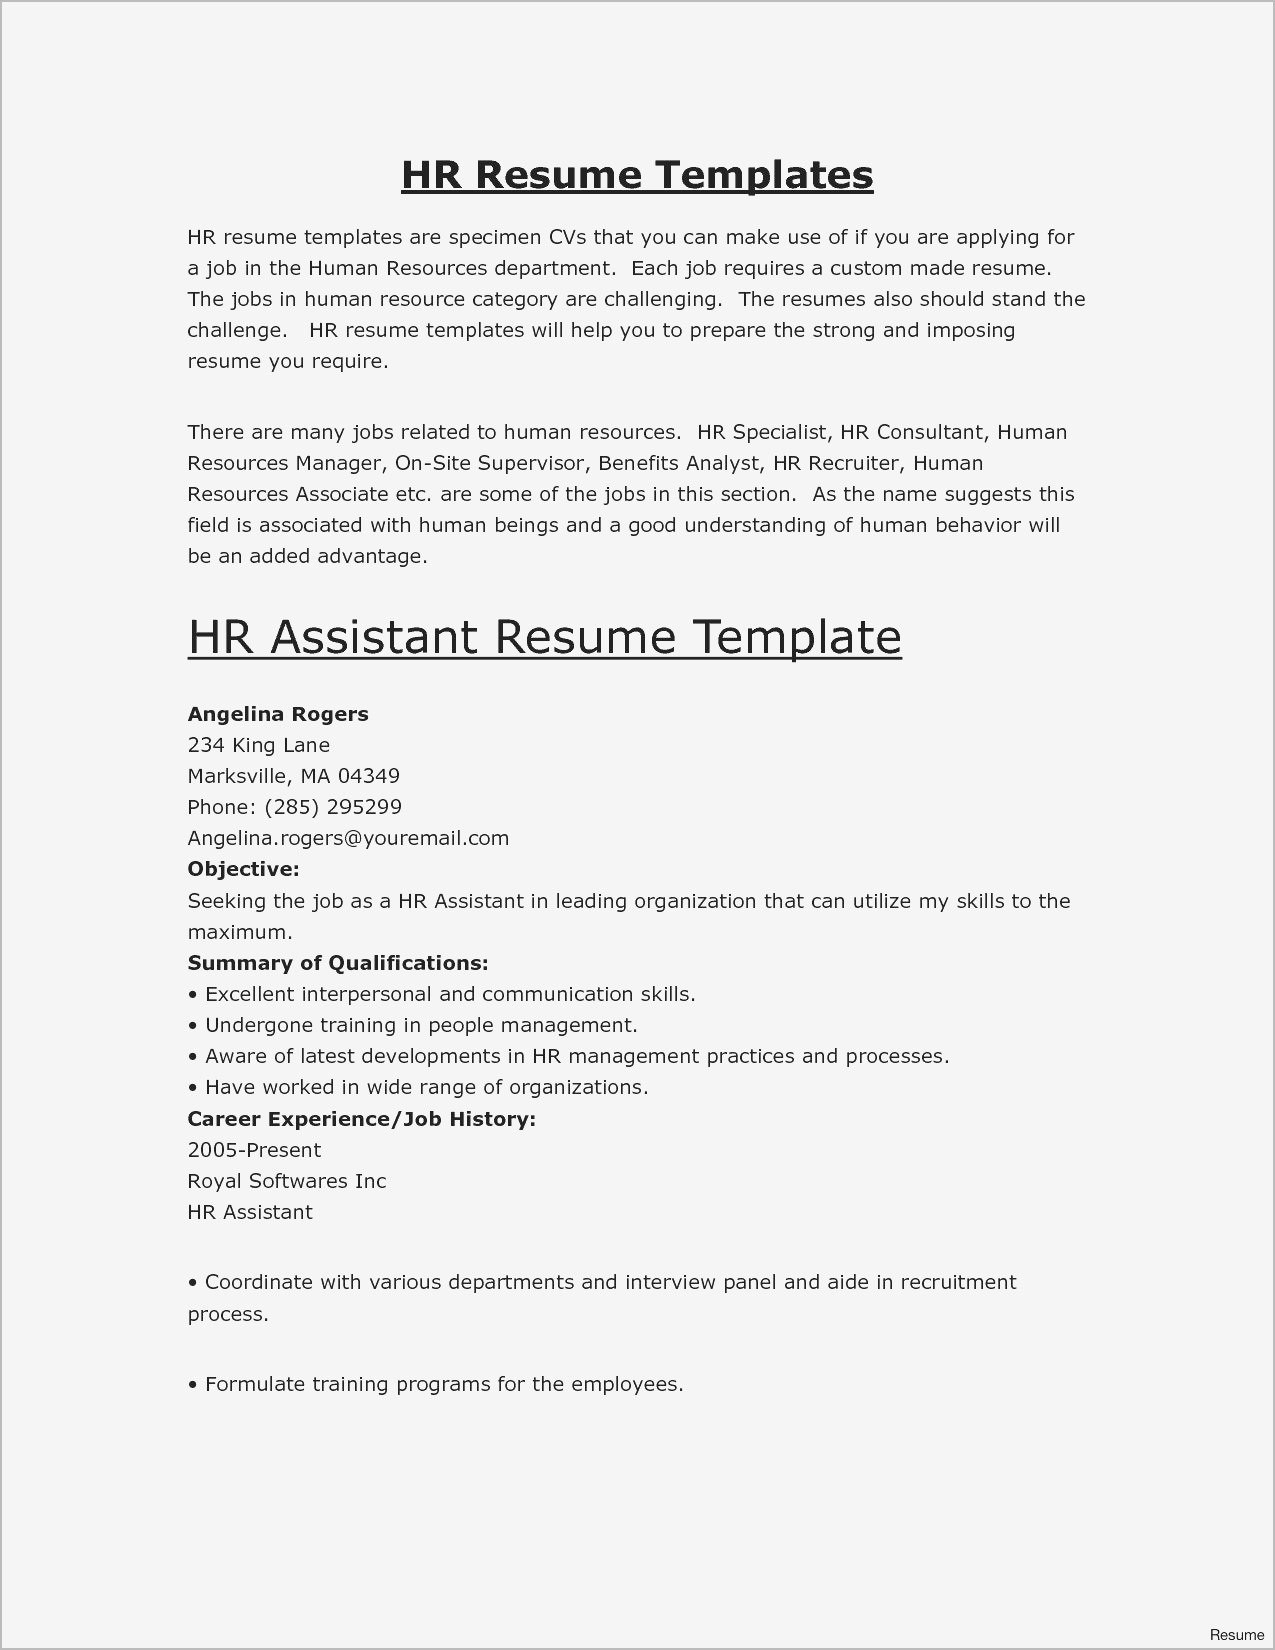 Soccer Coaching Resumes - 20 Coach Resume Template